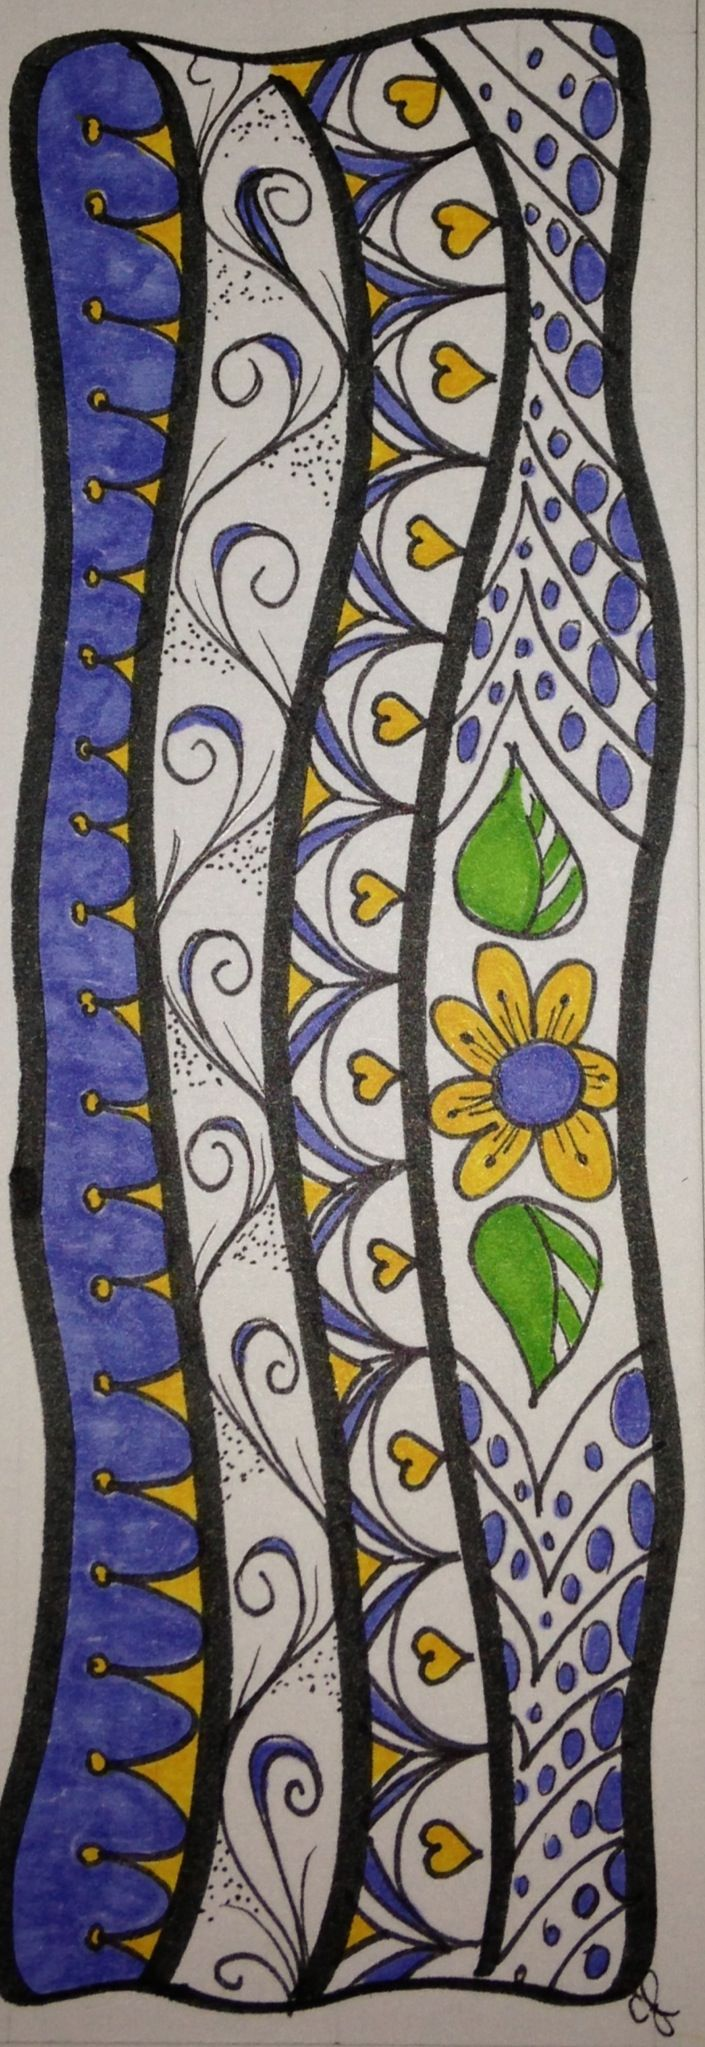 I love making bookmarks out of zen tangle / doodle art, they are so fun to print and give away!